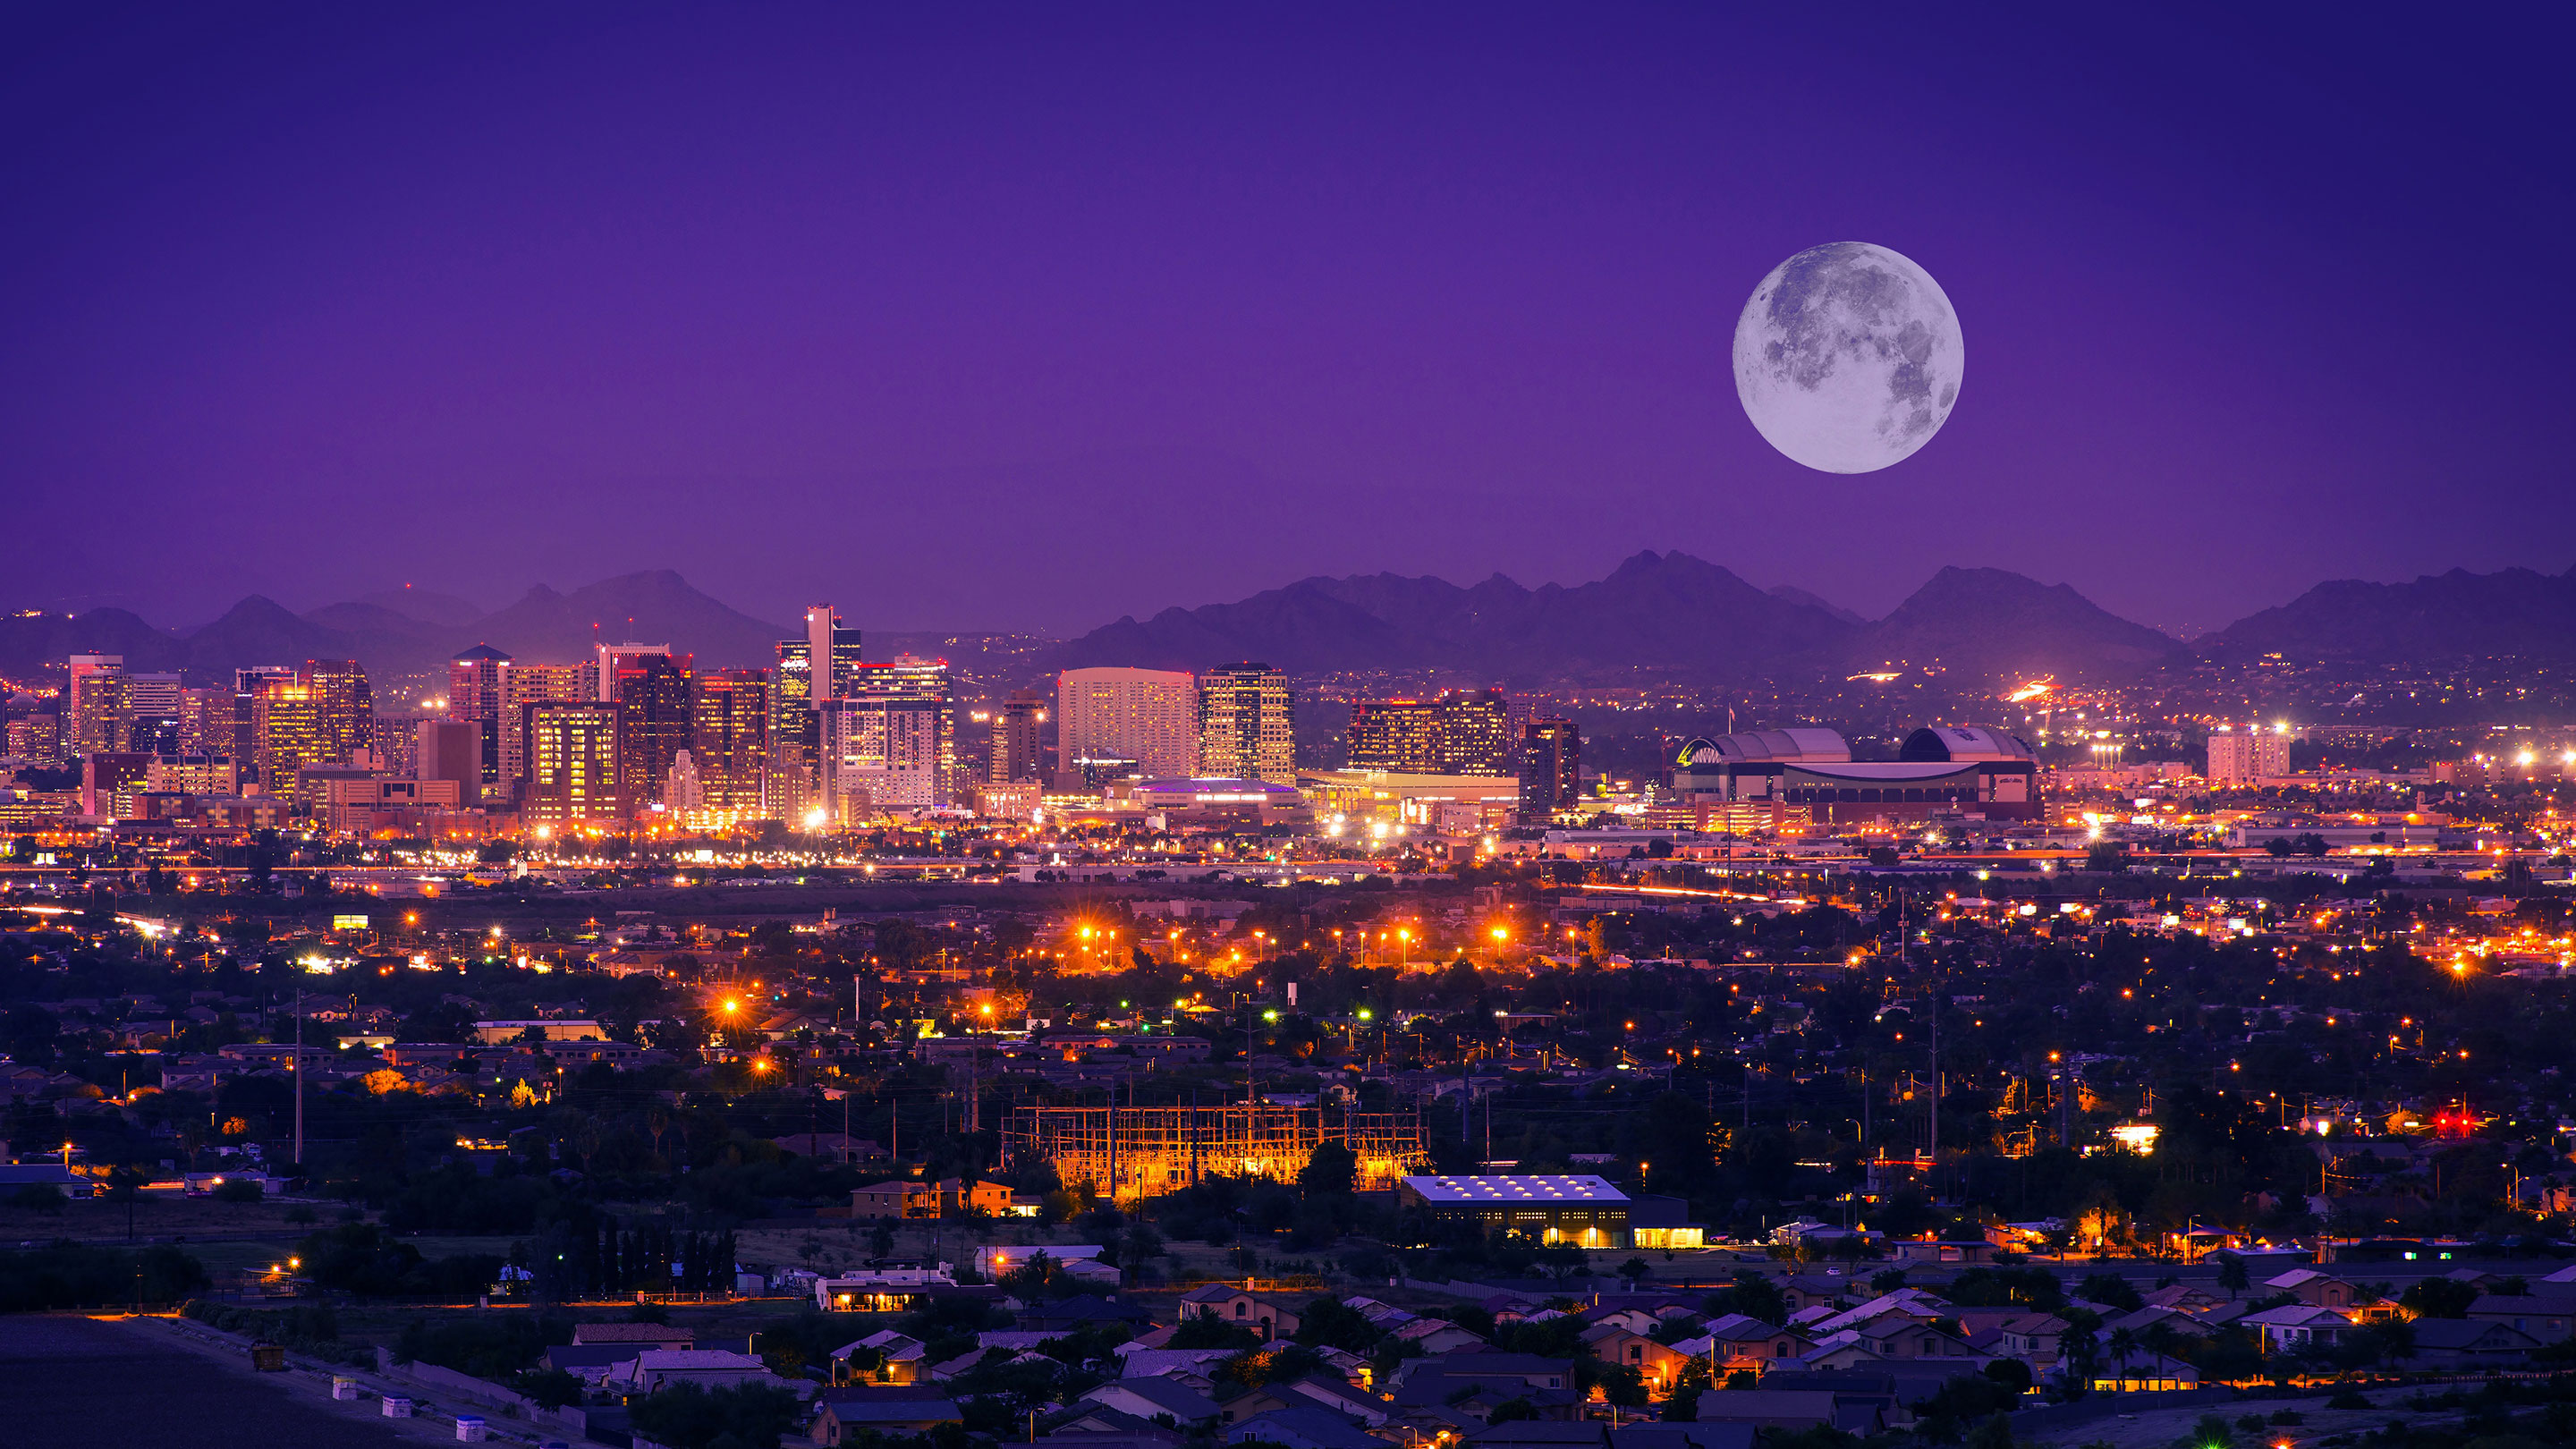 The Machine Network is now deployed in Phoenix Arizona!